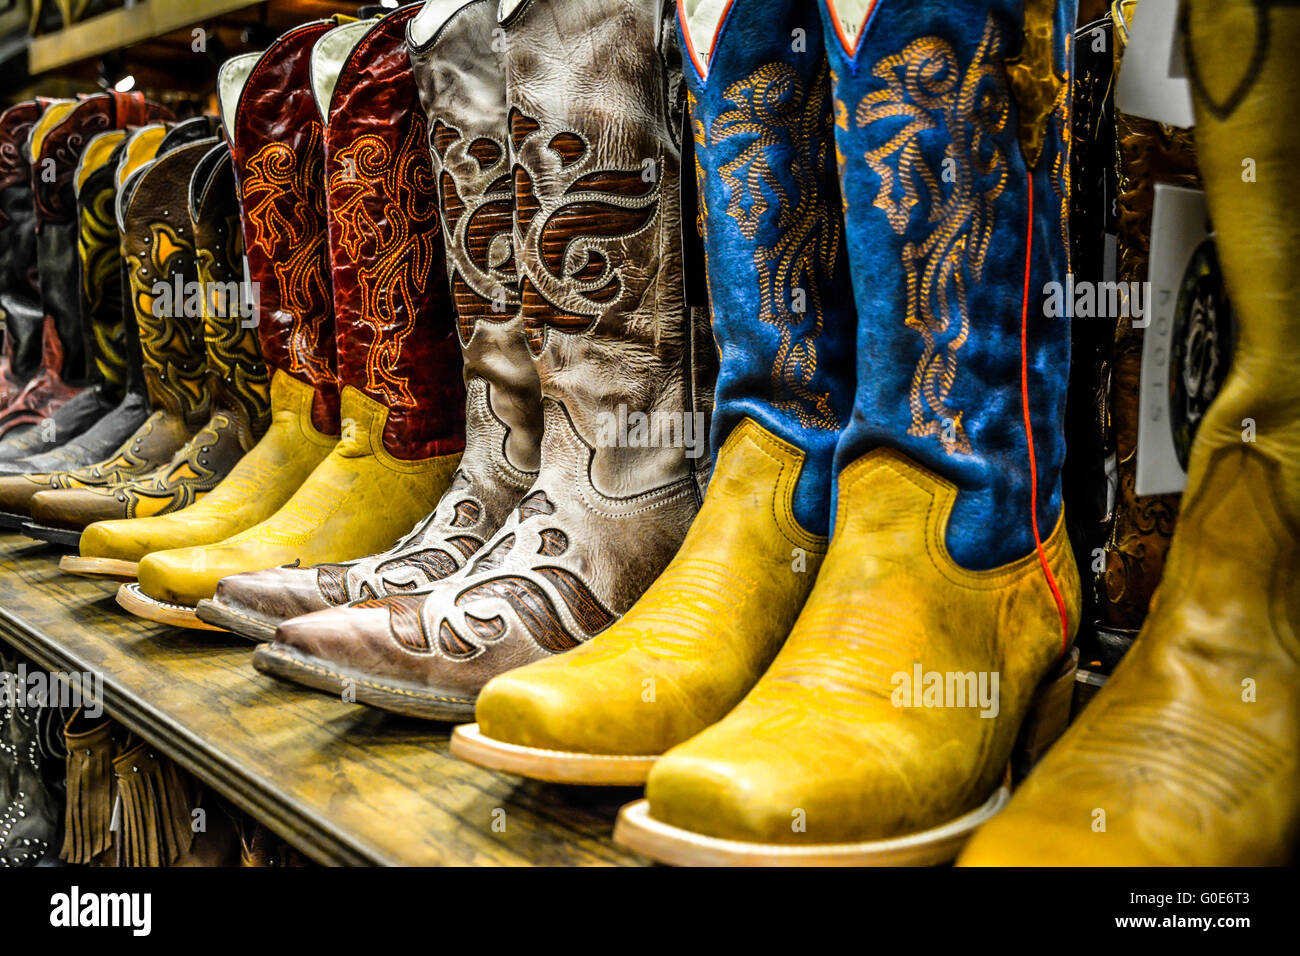 the nashville cowboy boot store has rows of unique cowboy